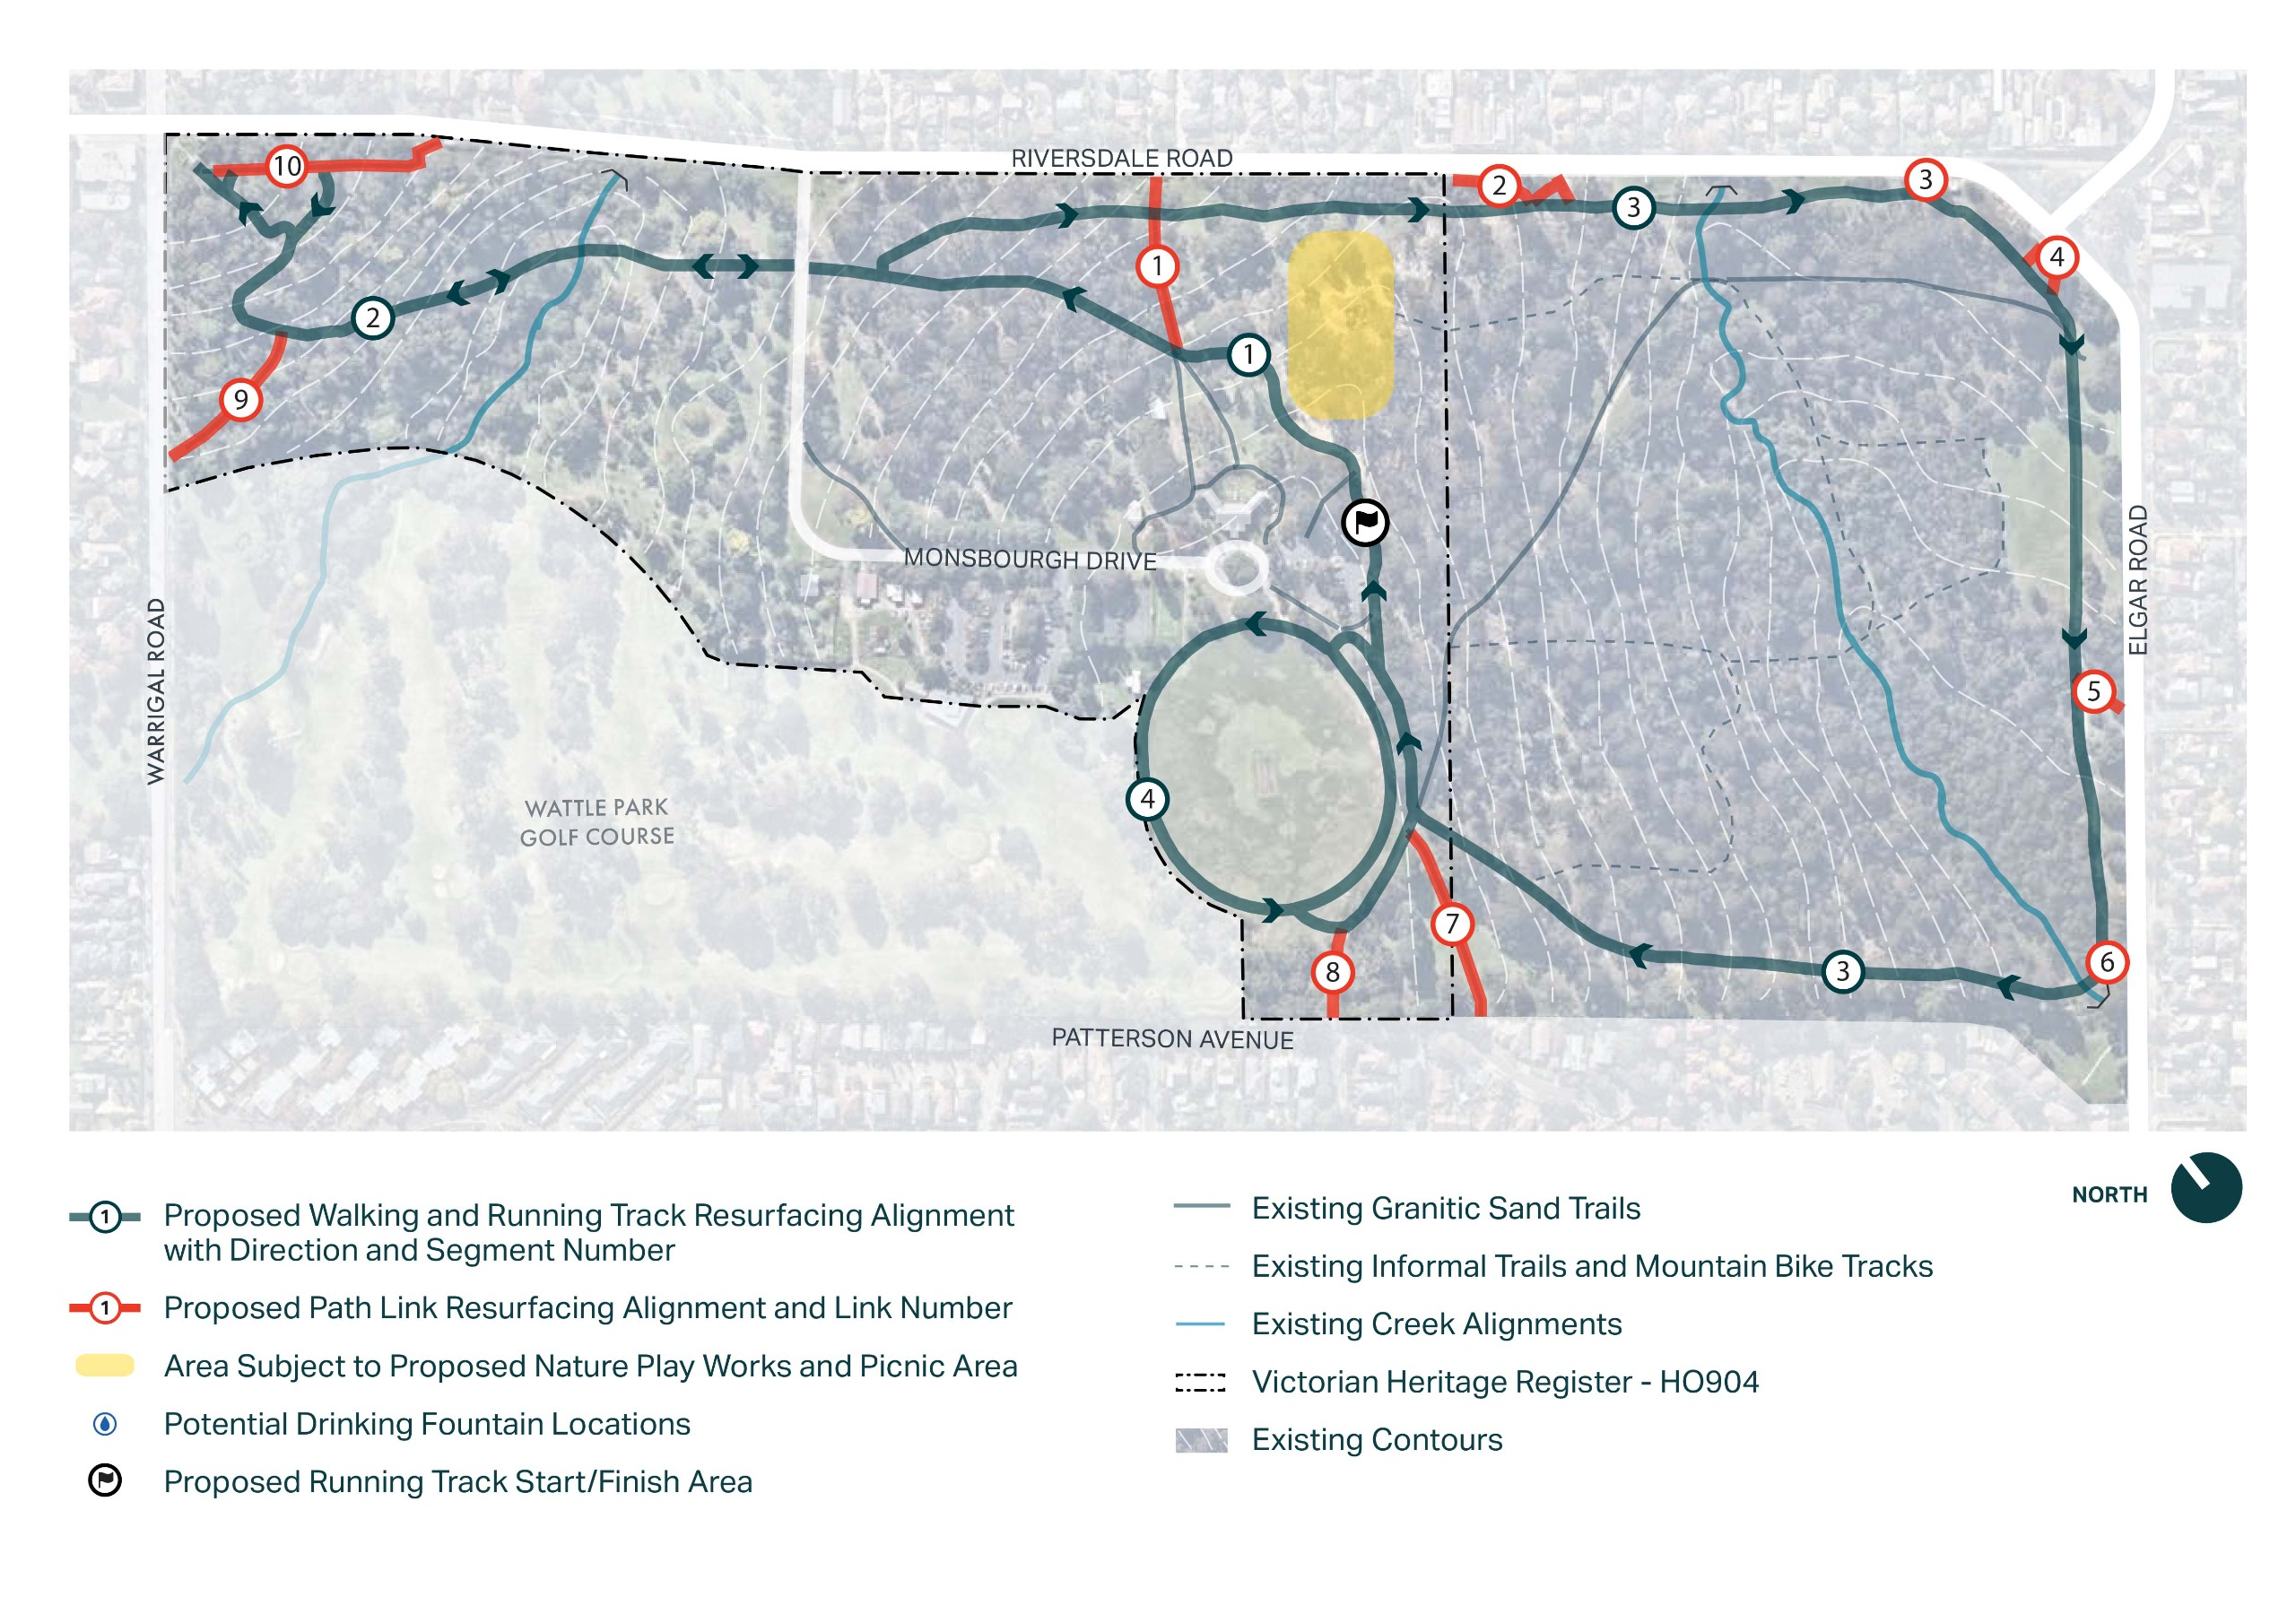 Map showing Wattle Park with proposed track along Riversdale Road and Elgar Road, track circles oval and goes through the north west of the park towards Warrigal Road. Path links are noted to Warrigal Road Riversdale Road and Patterson Avenue.